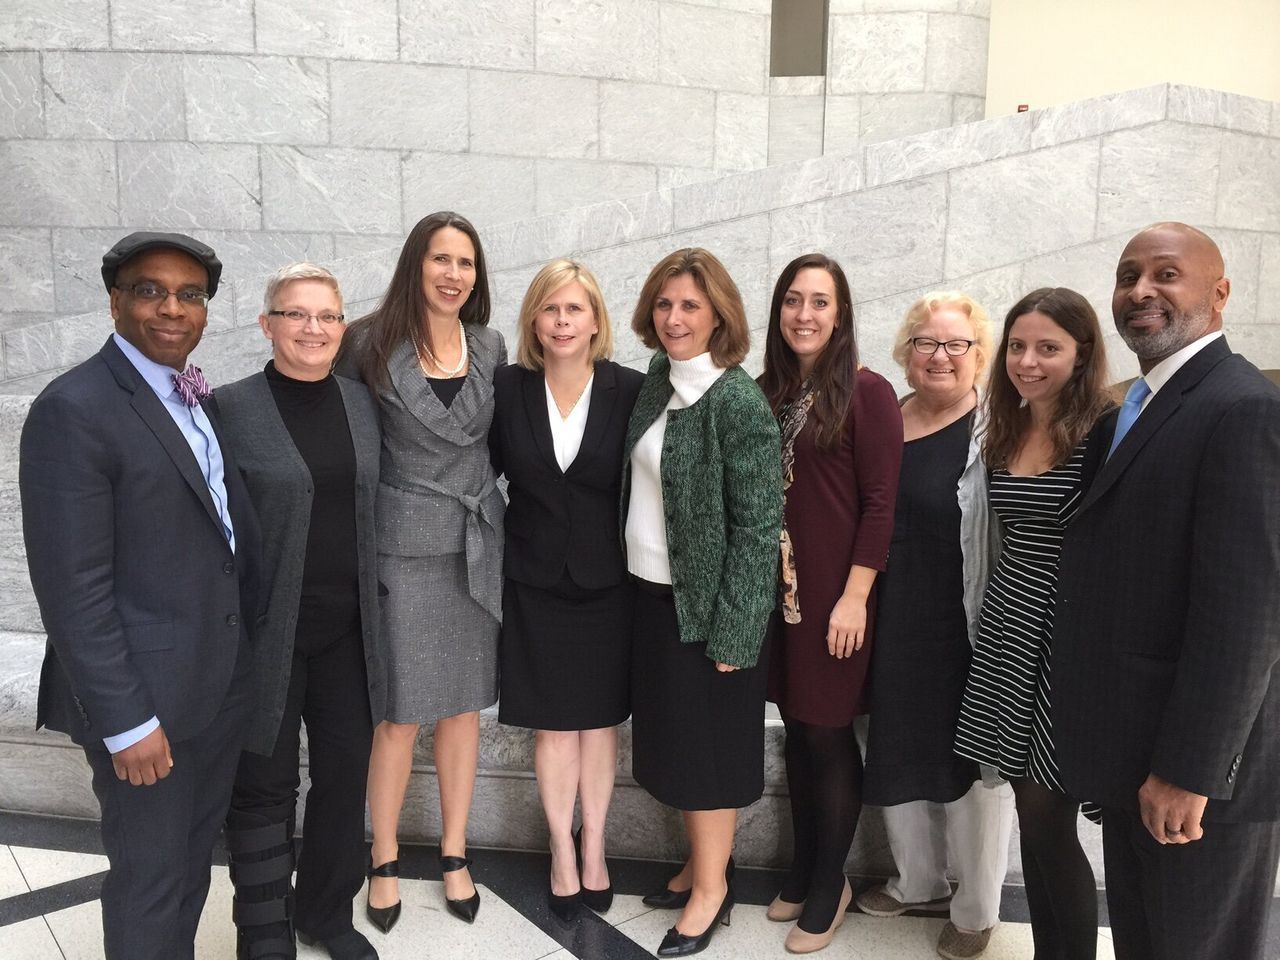 Lisa Montgomery's legal team, pictured in 2016. Kelley Henry is fourth from the left. Her co-counsel, Amy Harwell, is standing on her left.